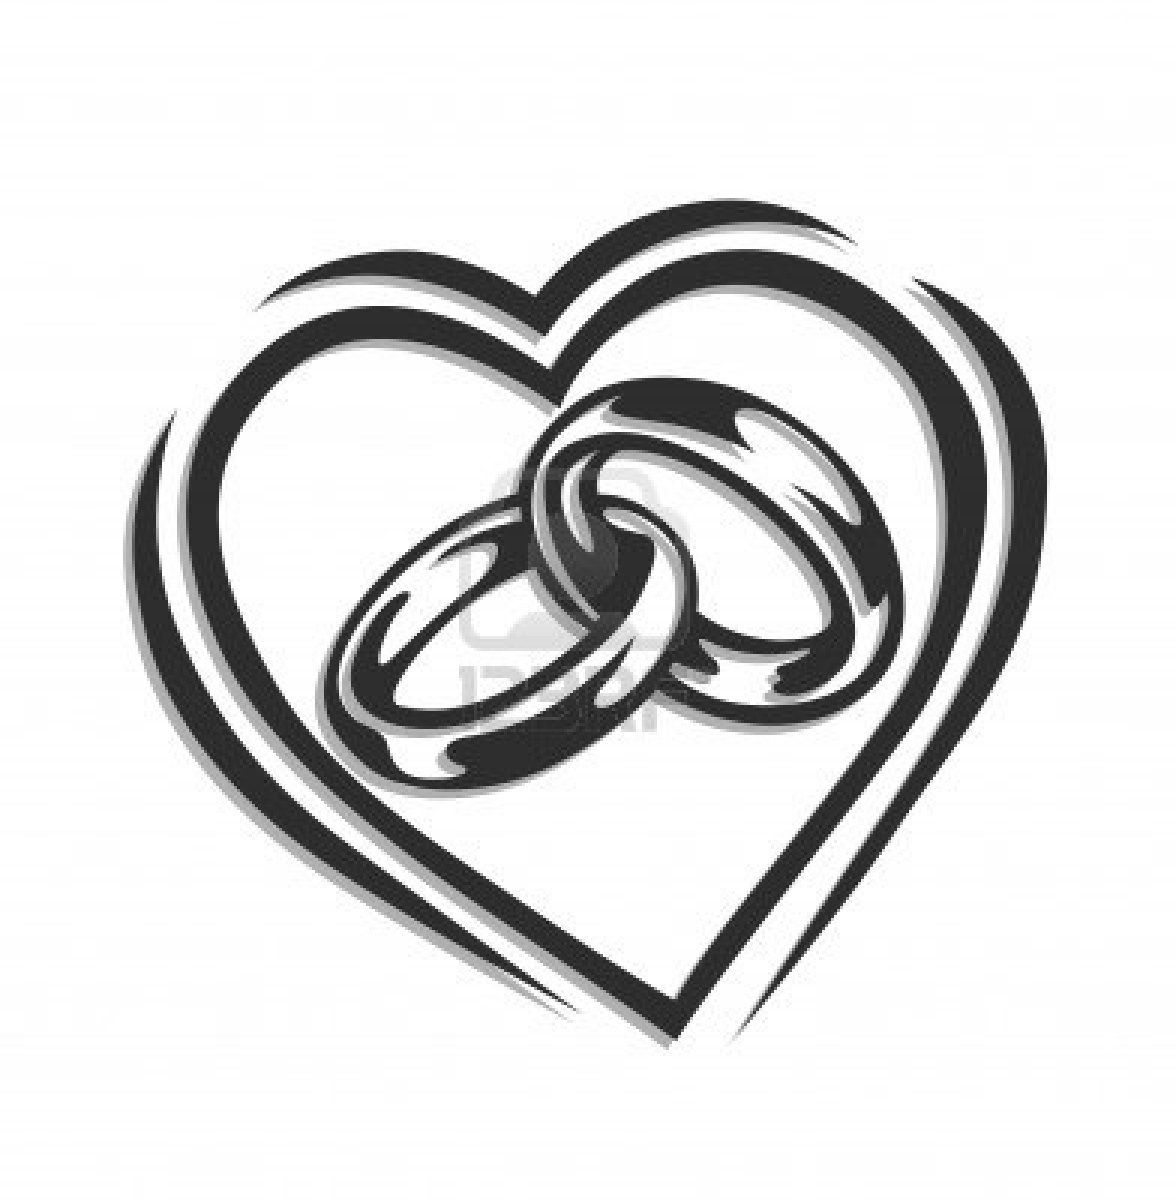 Weddings bands clipart clip art library Image result for free clipart wedding rings intertwined ... clip art library